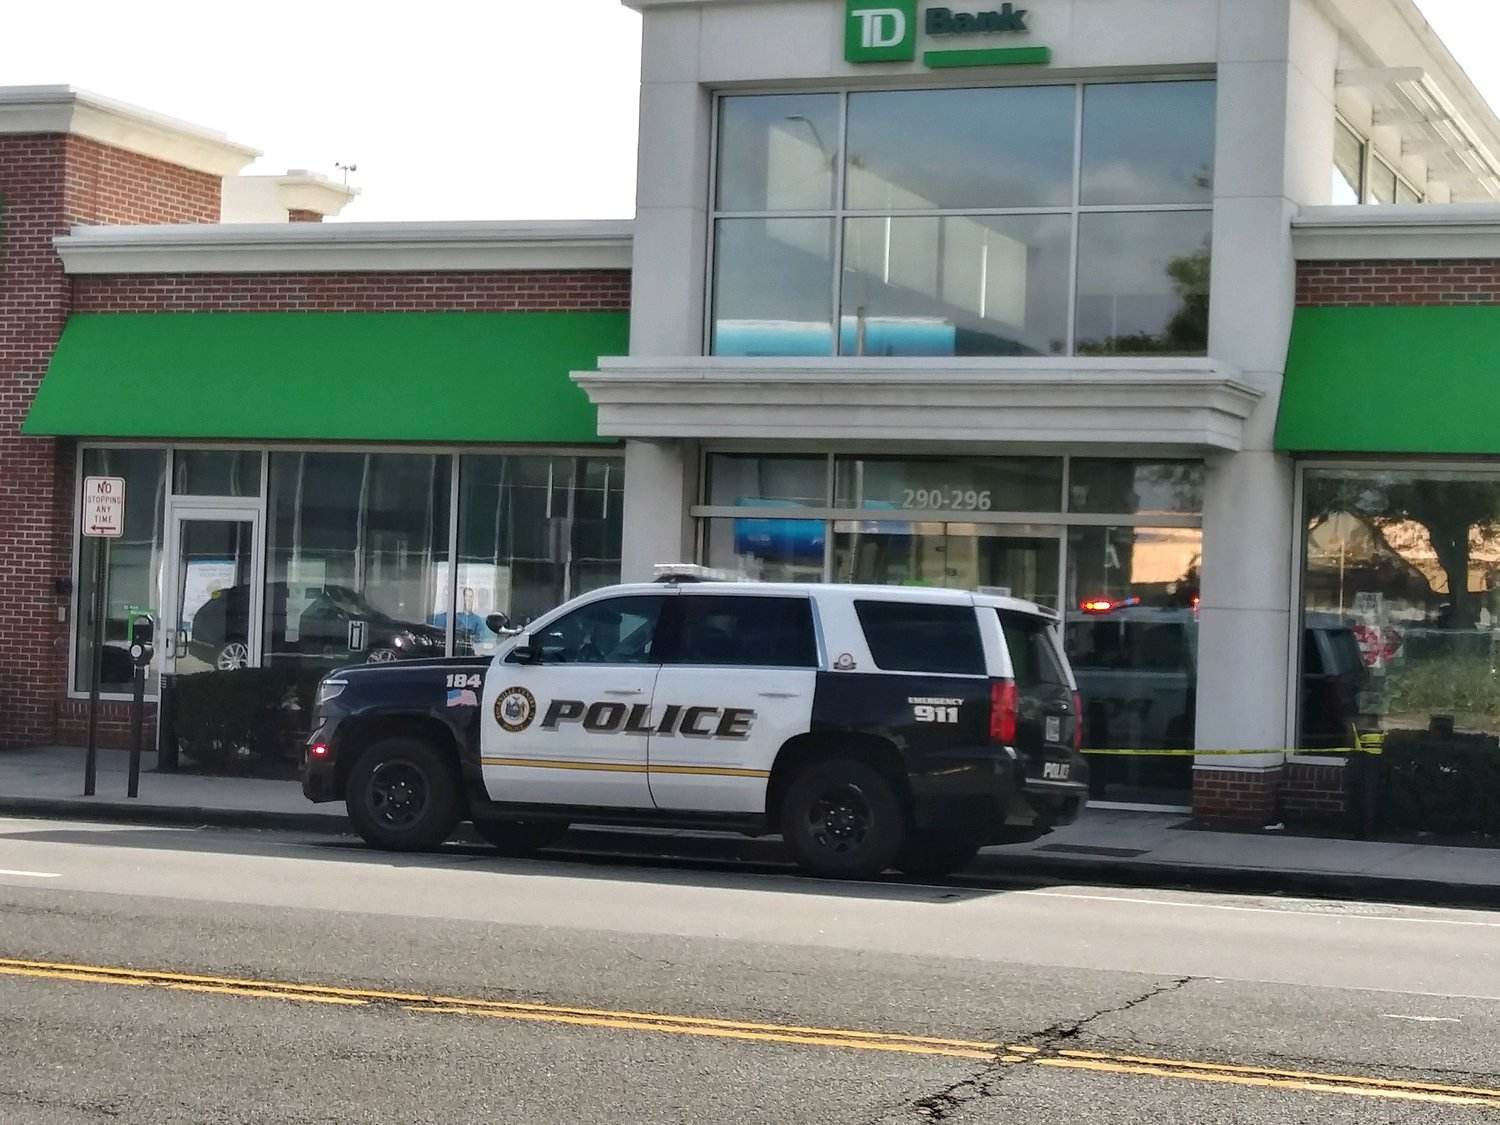 A man entered T.D. Bank on Merrick Road and demanded cash at about noon today, according to the Rockville Centre Police Department. He was arrested at 3:50 p.m.